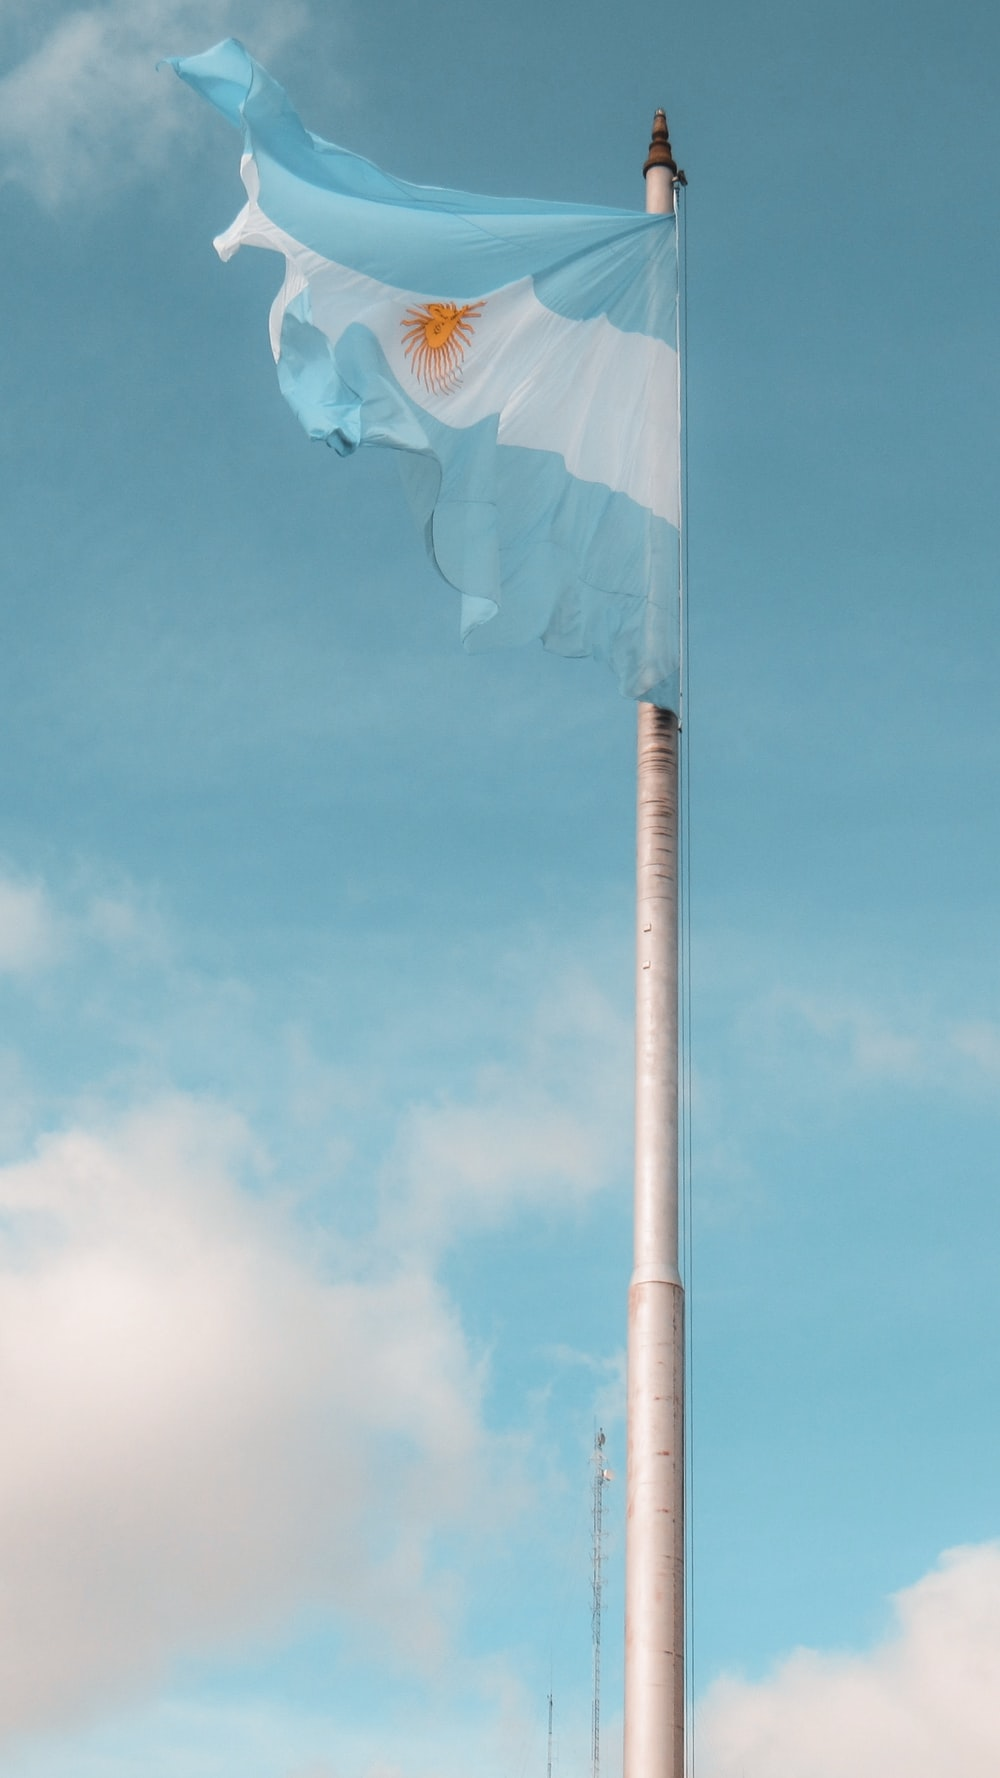 white and blue umbrella under blue sky during daytime